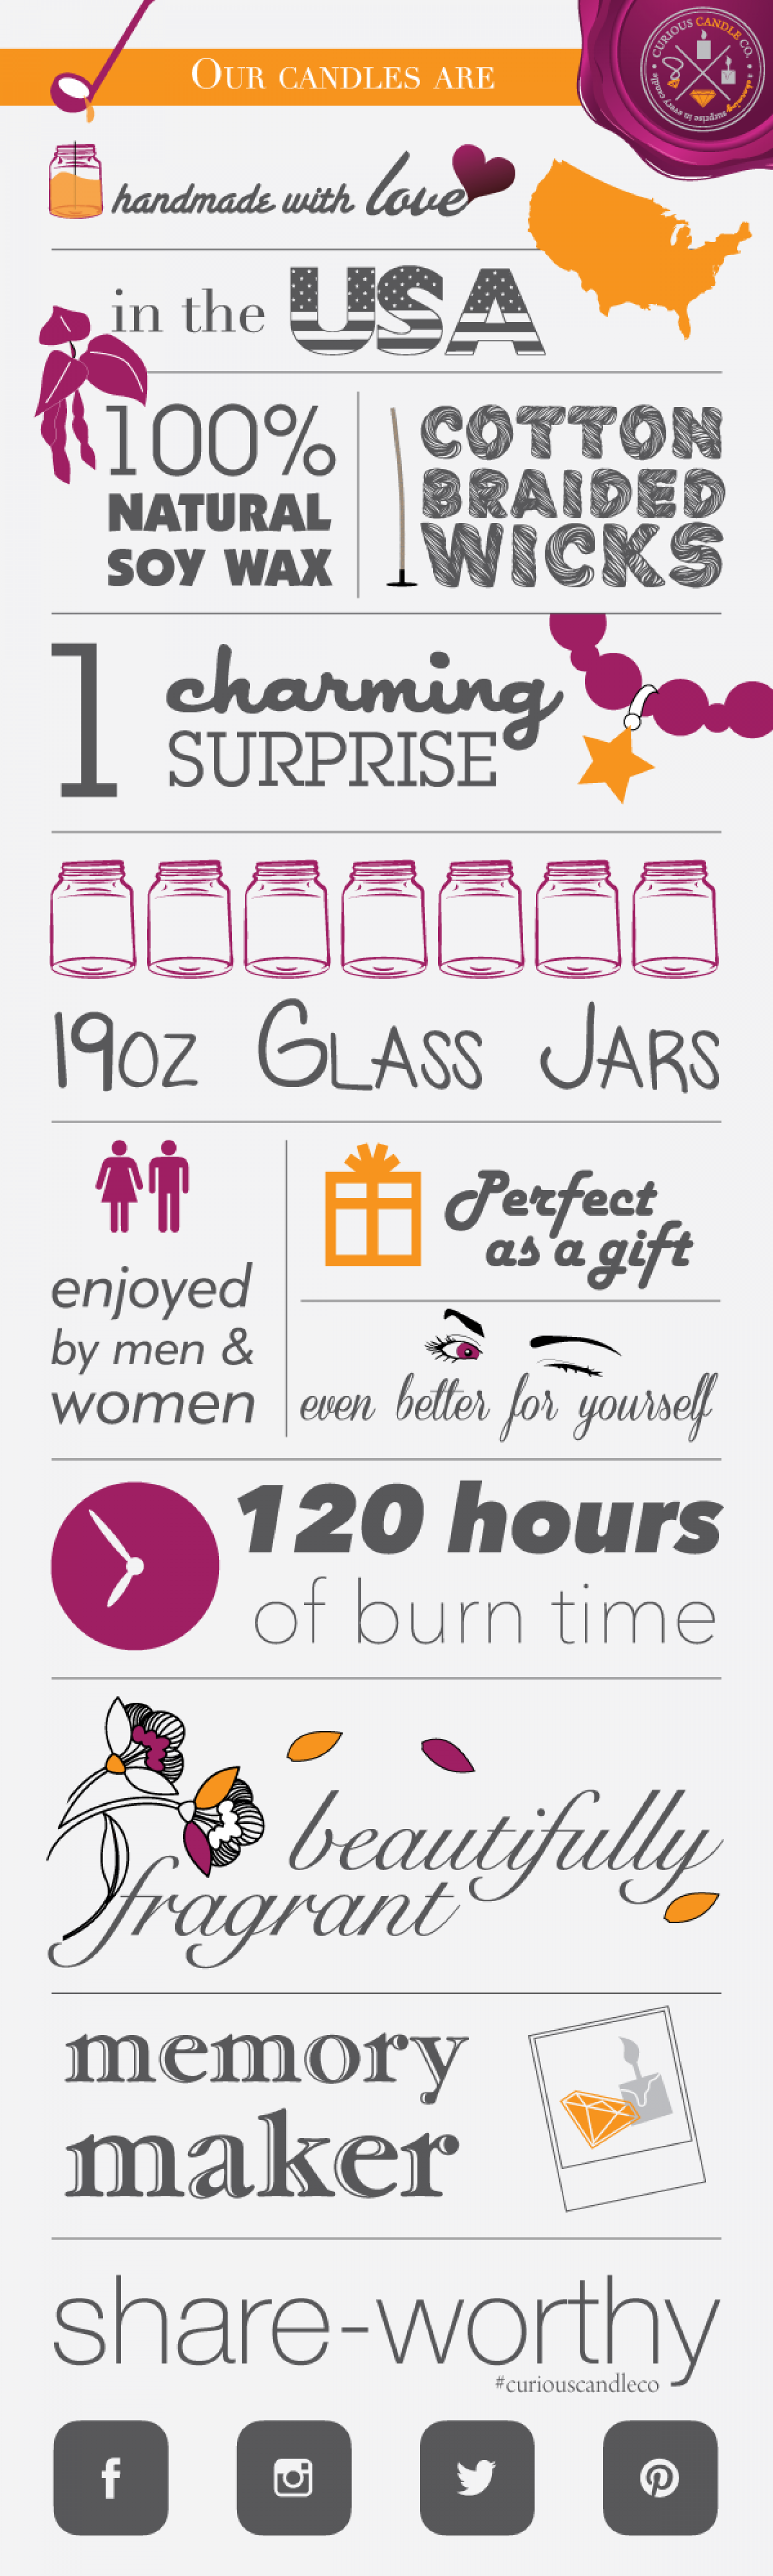 Our Candles Are Handmade With Love Infographic